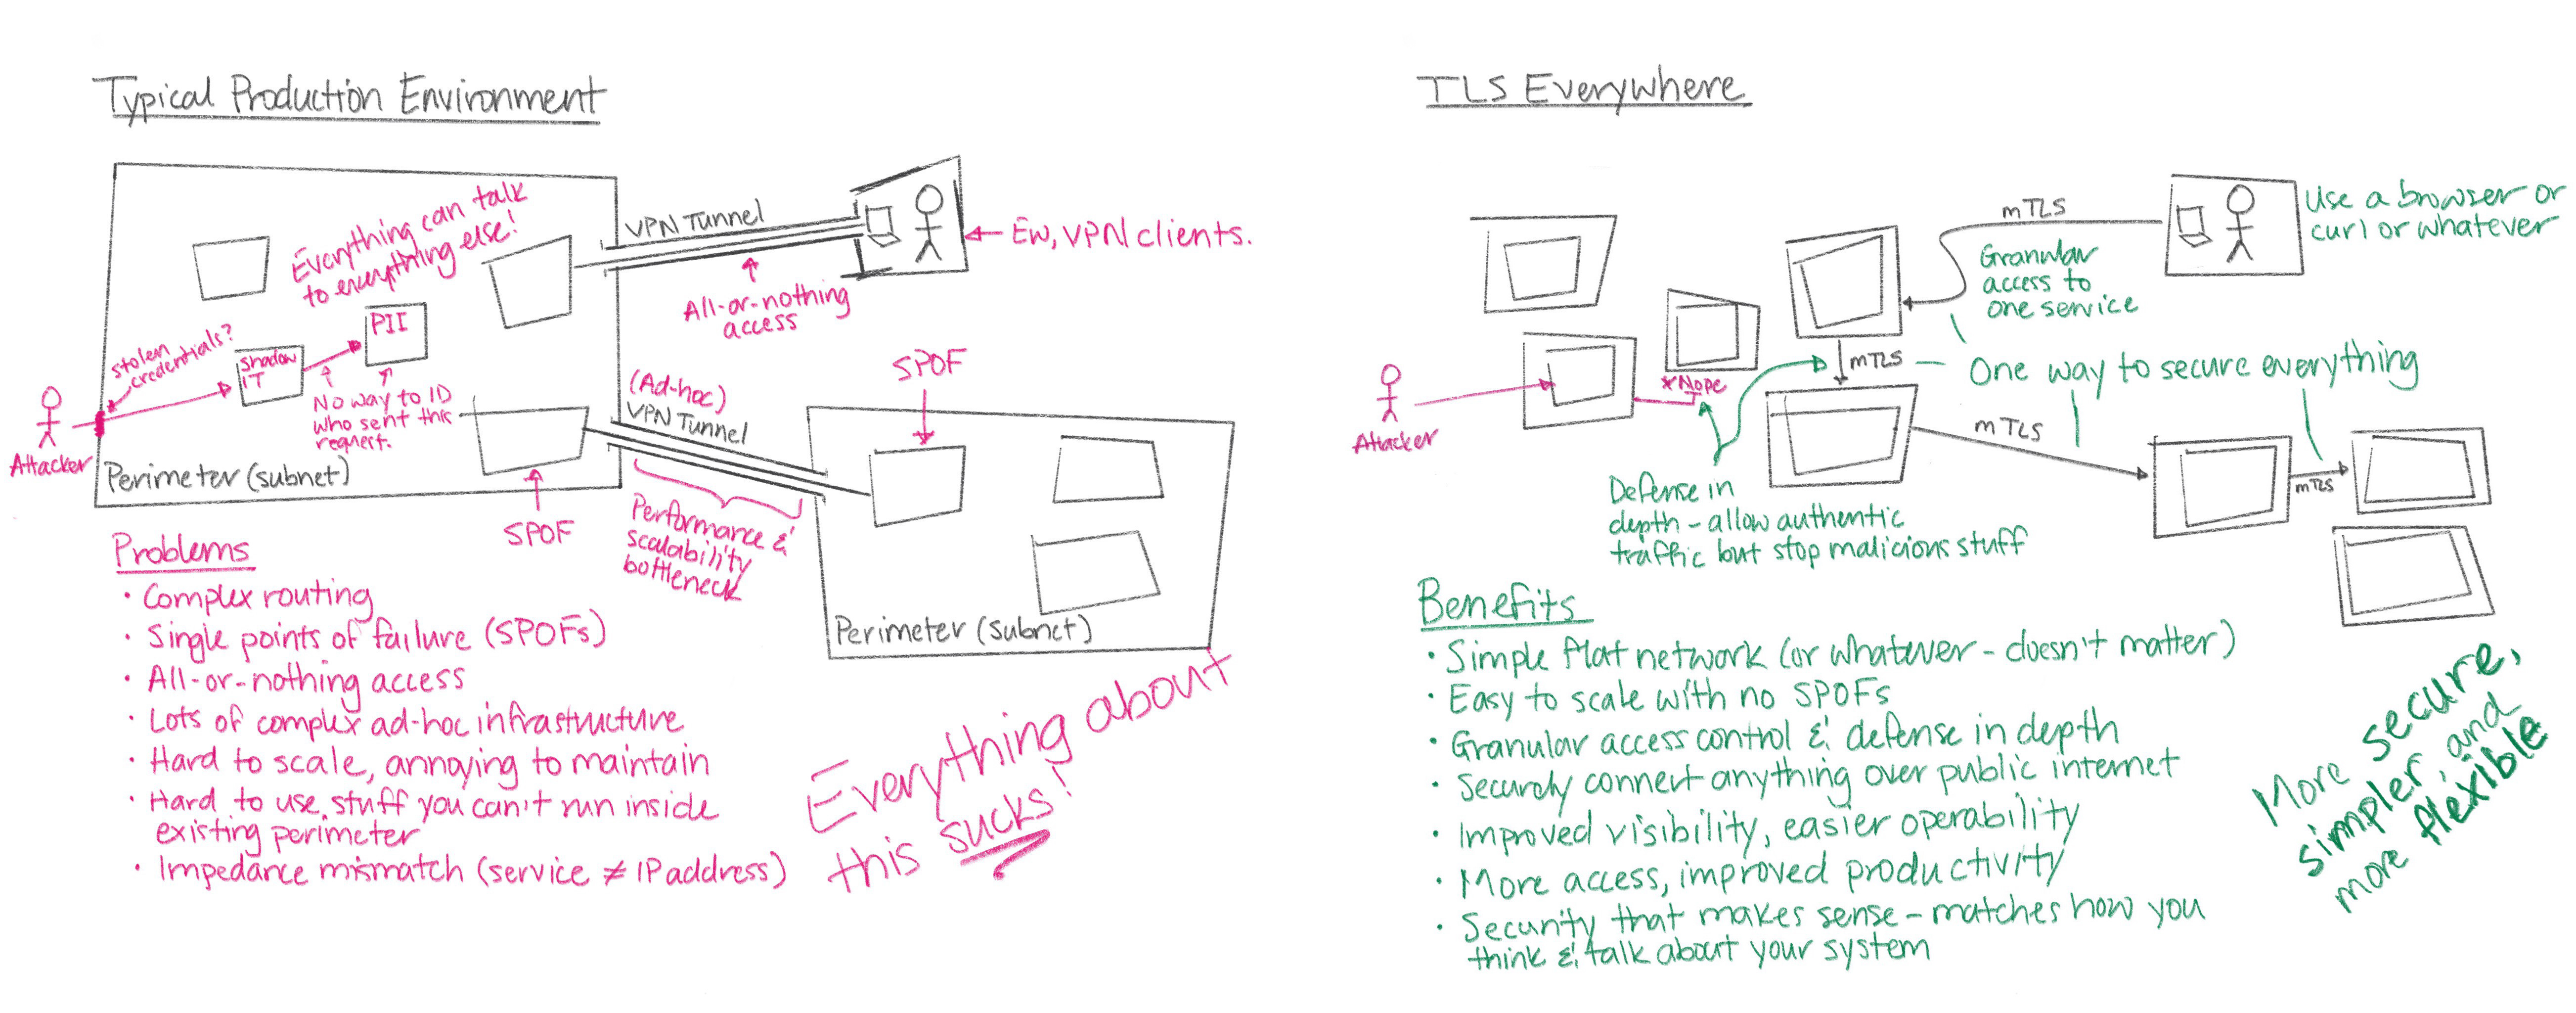 Typical Production Environment vs TLS everywhere